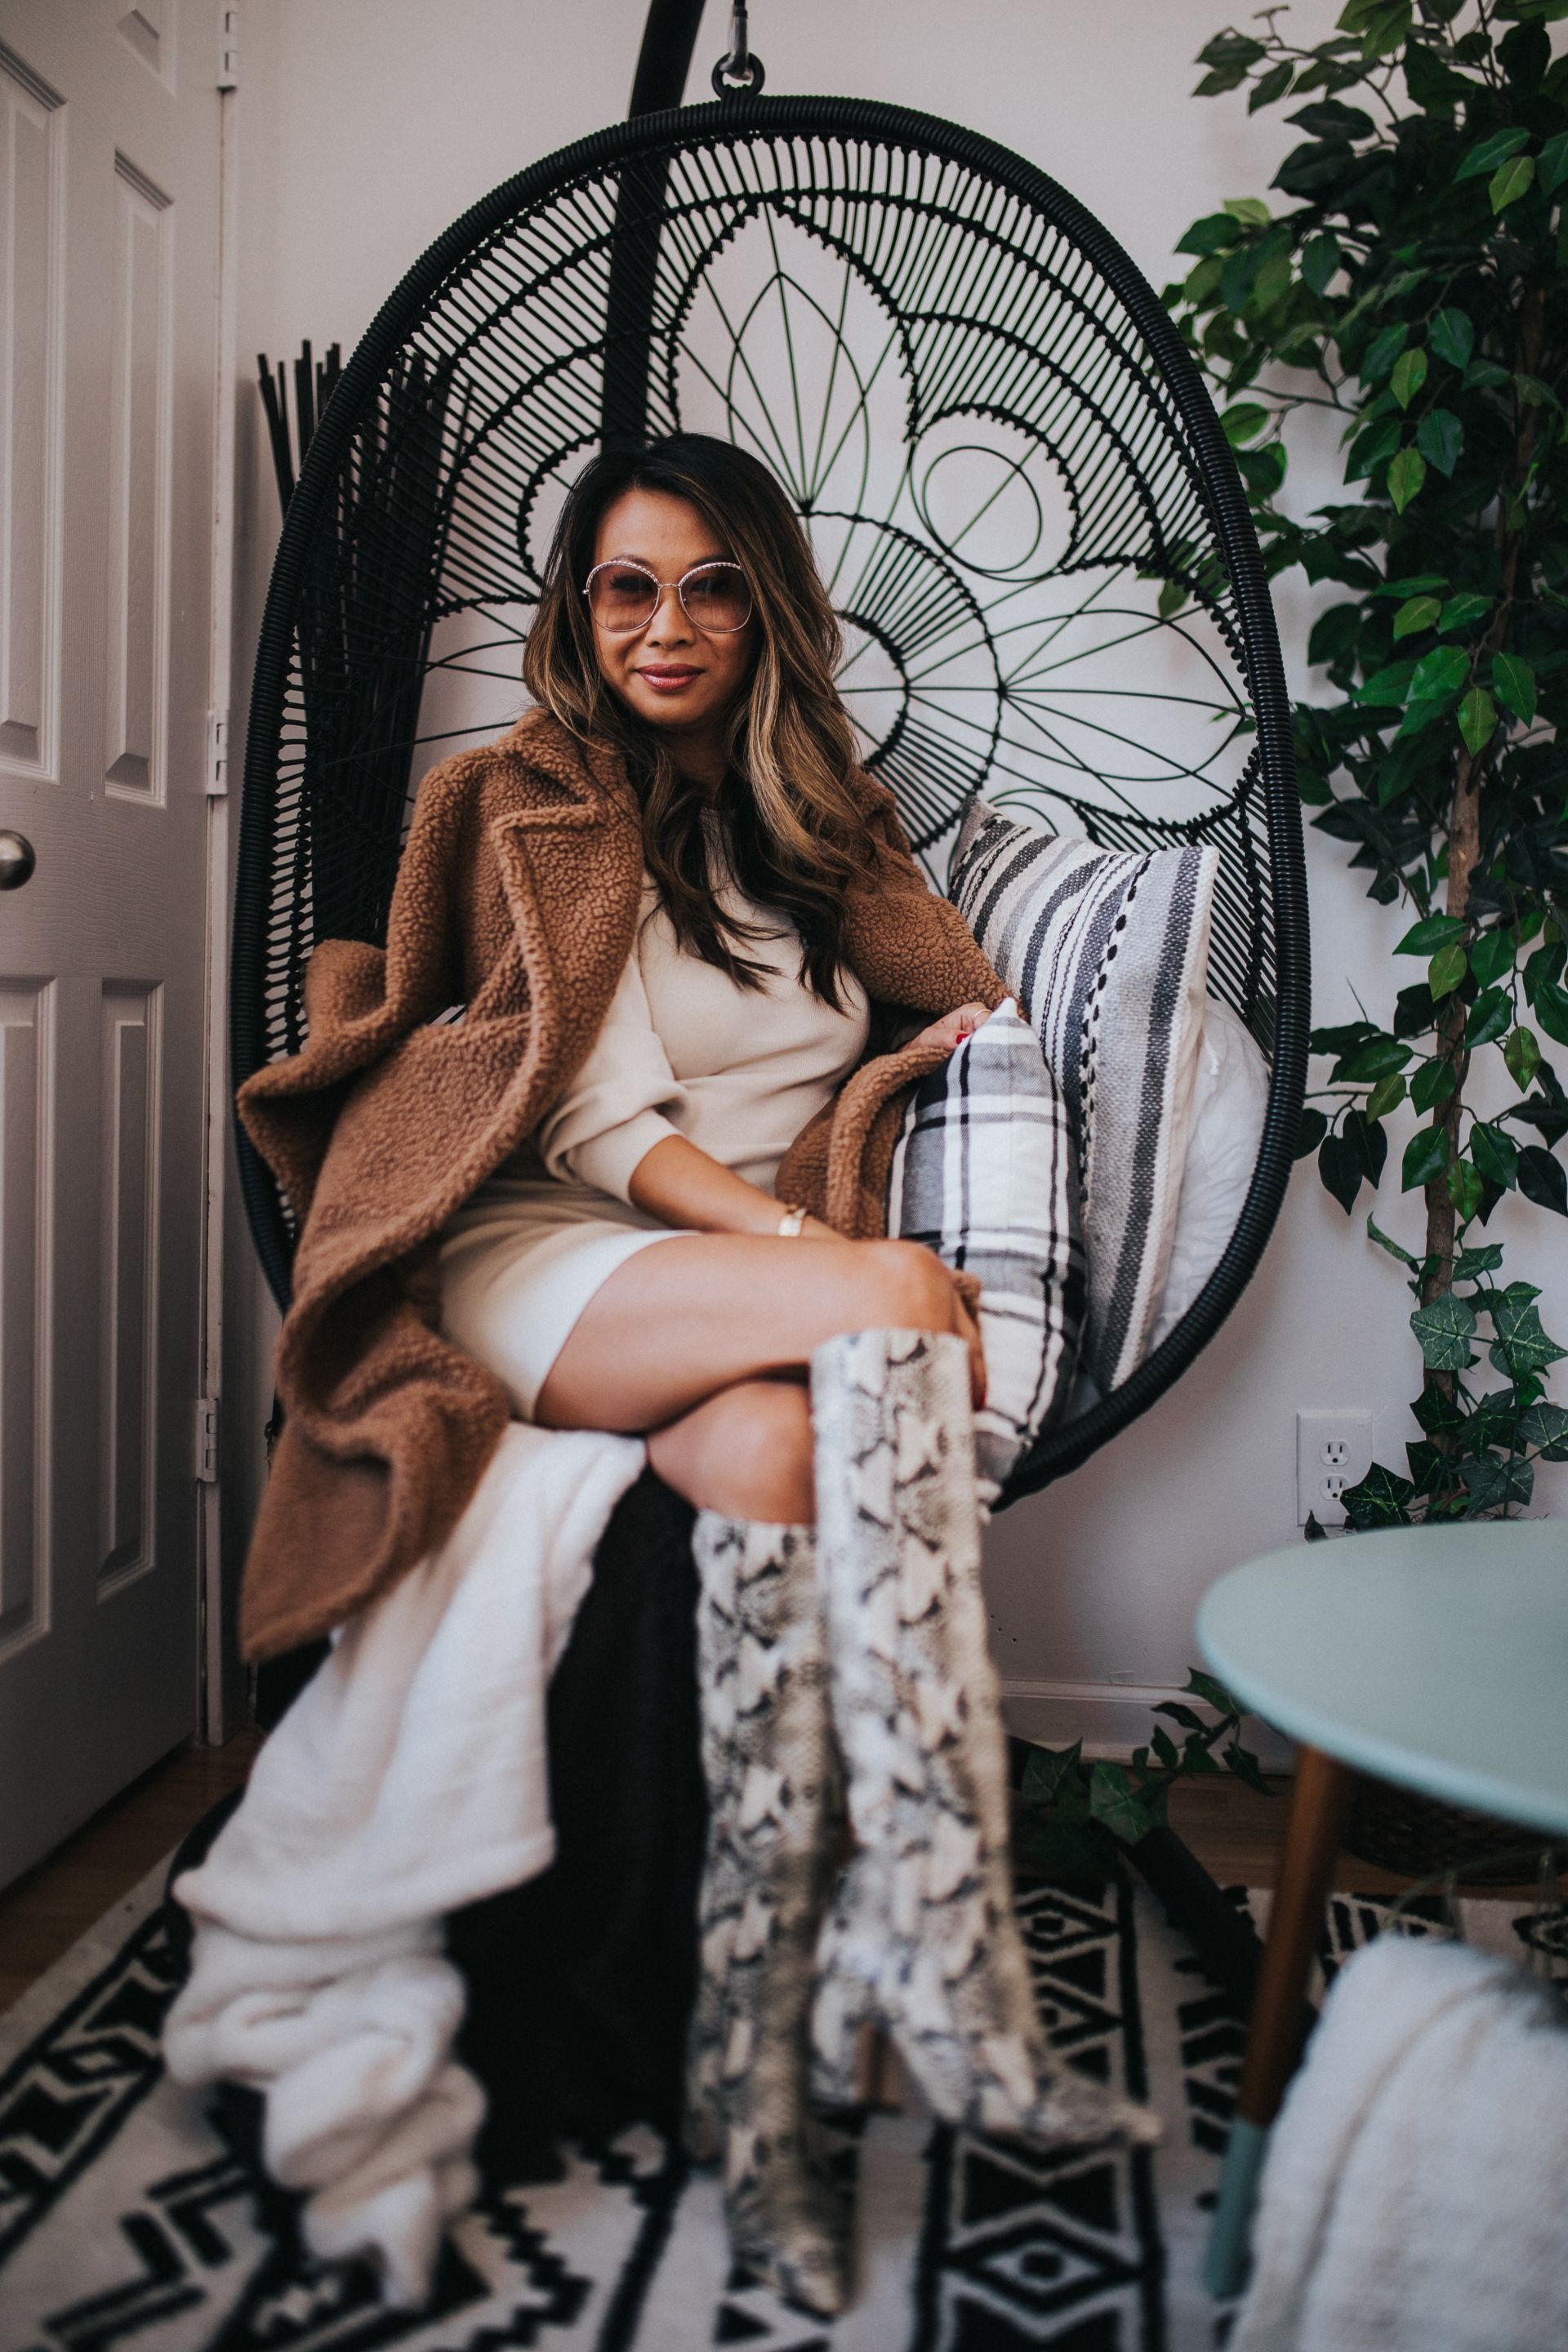 Jennifer Worman, Red Soles and Red Wine, fall styles, fall outfit ideas, outfit ideas, fall 2019 must haves, fall 2019 style, mom style, chicago blogger, sweater dress outfit ideas, teddy coat outfit ideas, how to style a sweater dress, snakeskin boots, how to style snakeskin boots for fall, how to wear a teddy coat for fall, Leith Long Sleeve Sweater Dress, Sam Edelman Hai Knee High Boot, Nordstrom shopping finds, nordstrom try on, nordstrom fall styles, teddy coats under $150